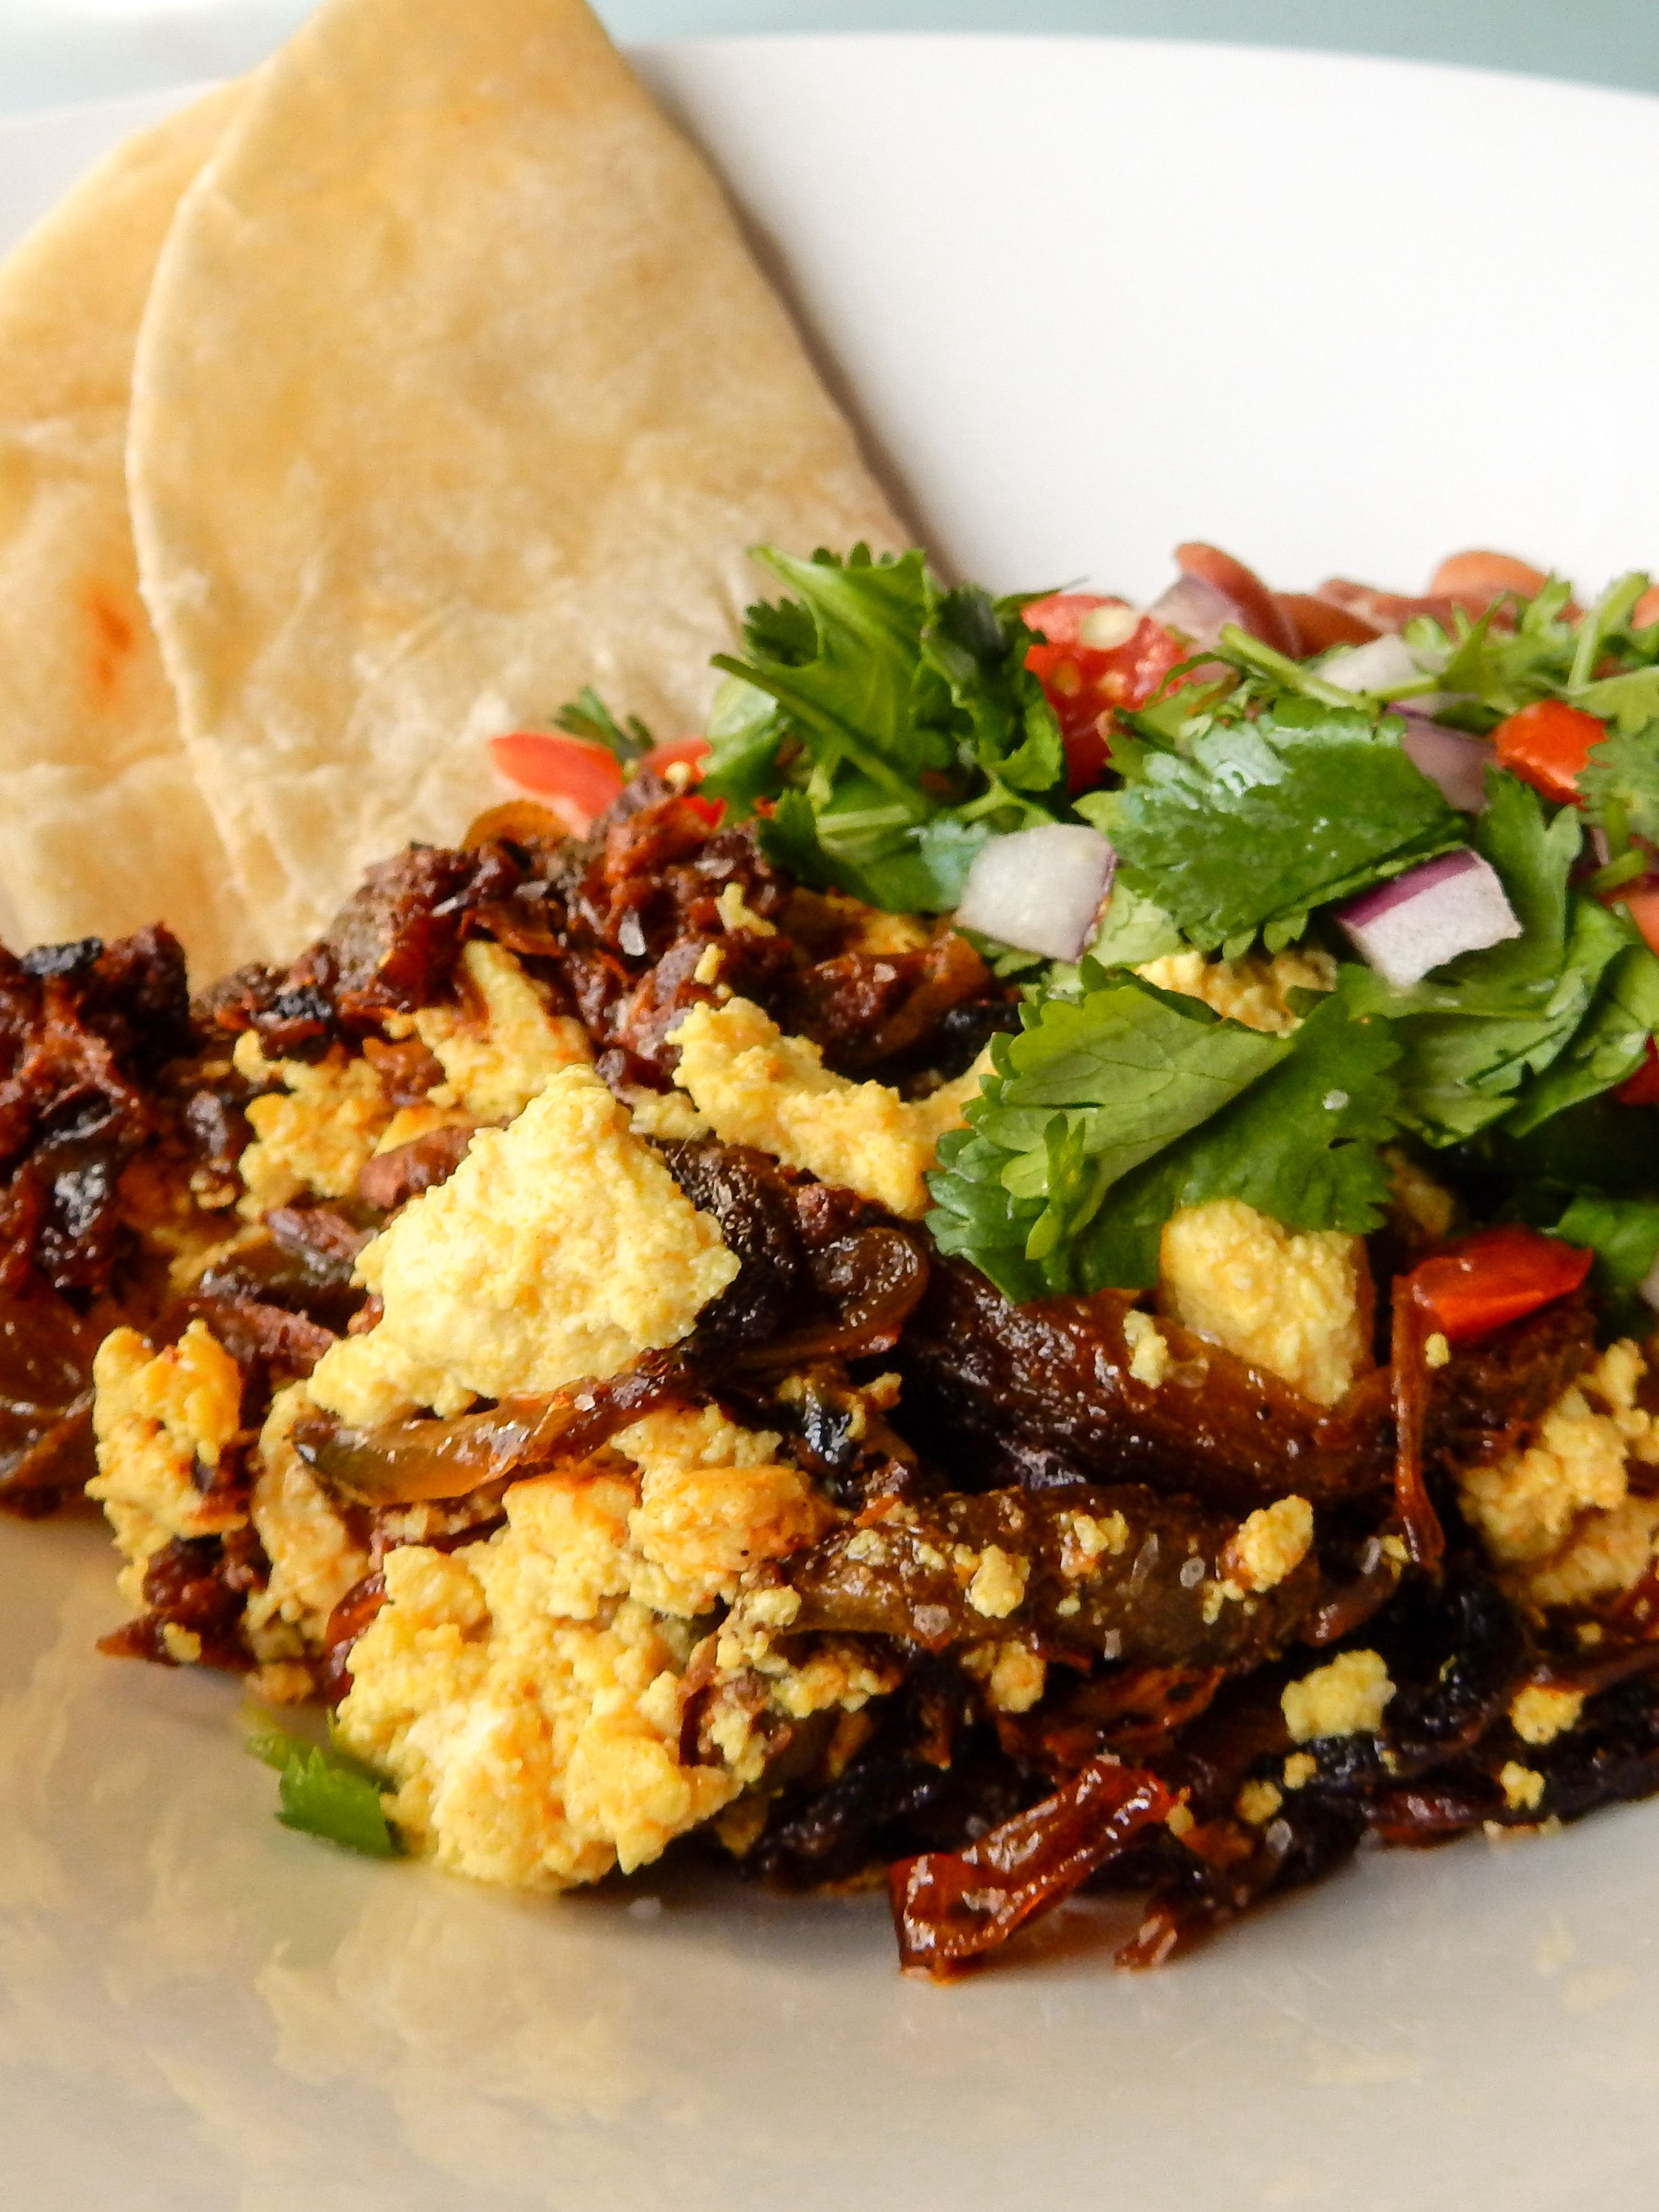 Vegan Jackfruit Machaca Con Huevos Vegan Recipes In 2019